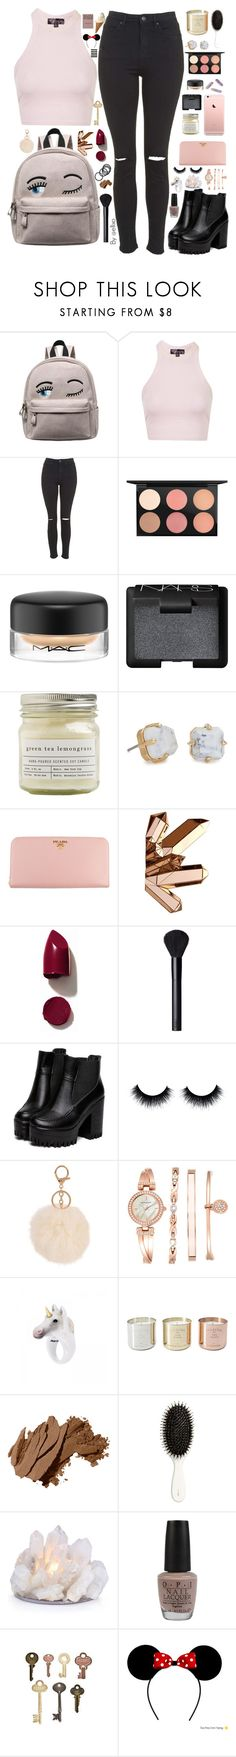 """""""Thanks for 1000 followers 💕💕💕"""" by ellixo ❤ liked on Polyvore featuring Topshop, MAC Cosmetics, NARS Cosmetics, Brooklyn Candle Studio, Lele Sadoughi, Prada, Armitage Avenue, Anne Klein, Nach Bijoux and Tom Dixon"""